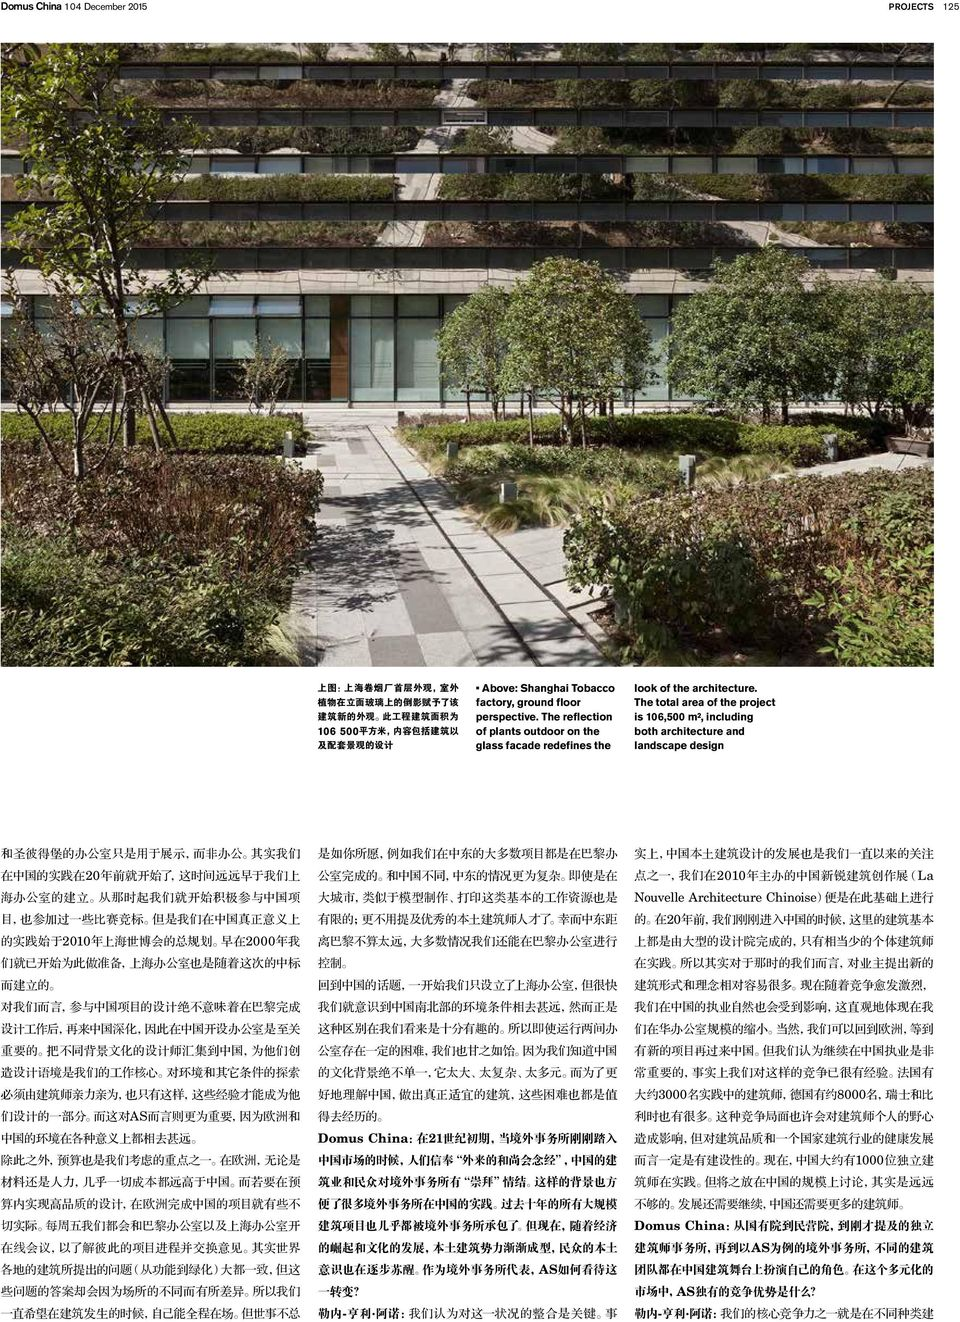 The total area of the project is 106,500 m², including both architecture and landscape design 和 圣 彼 得 堡 的 办 公 室 只 是 用 于 展 示, 而 非 办 公 其 实 我 们 在 中 国 的 实 践 在 20 年 前 就 开 始 了, 这 时 间 远 远 早 于 我 们 上 海 办 公 室